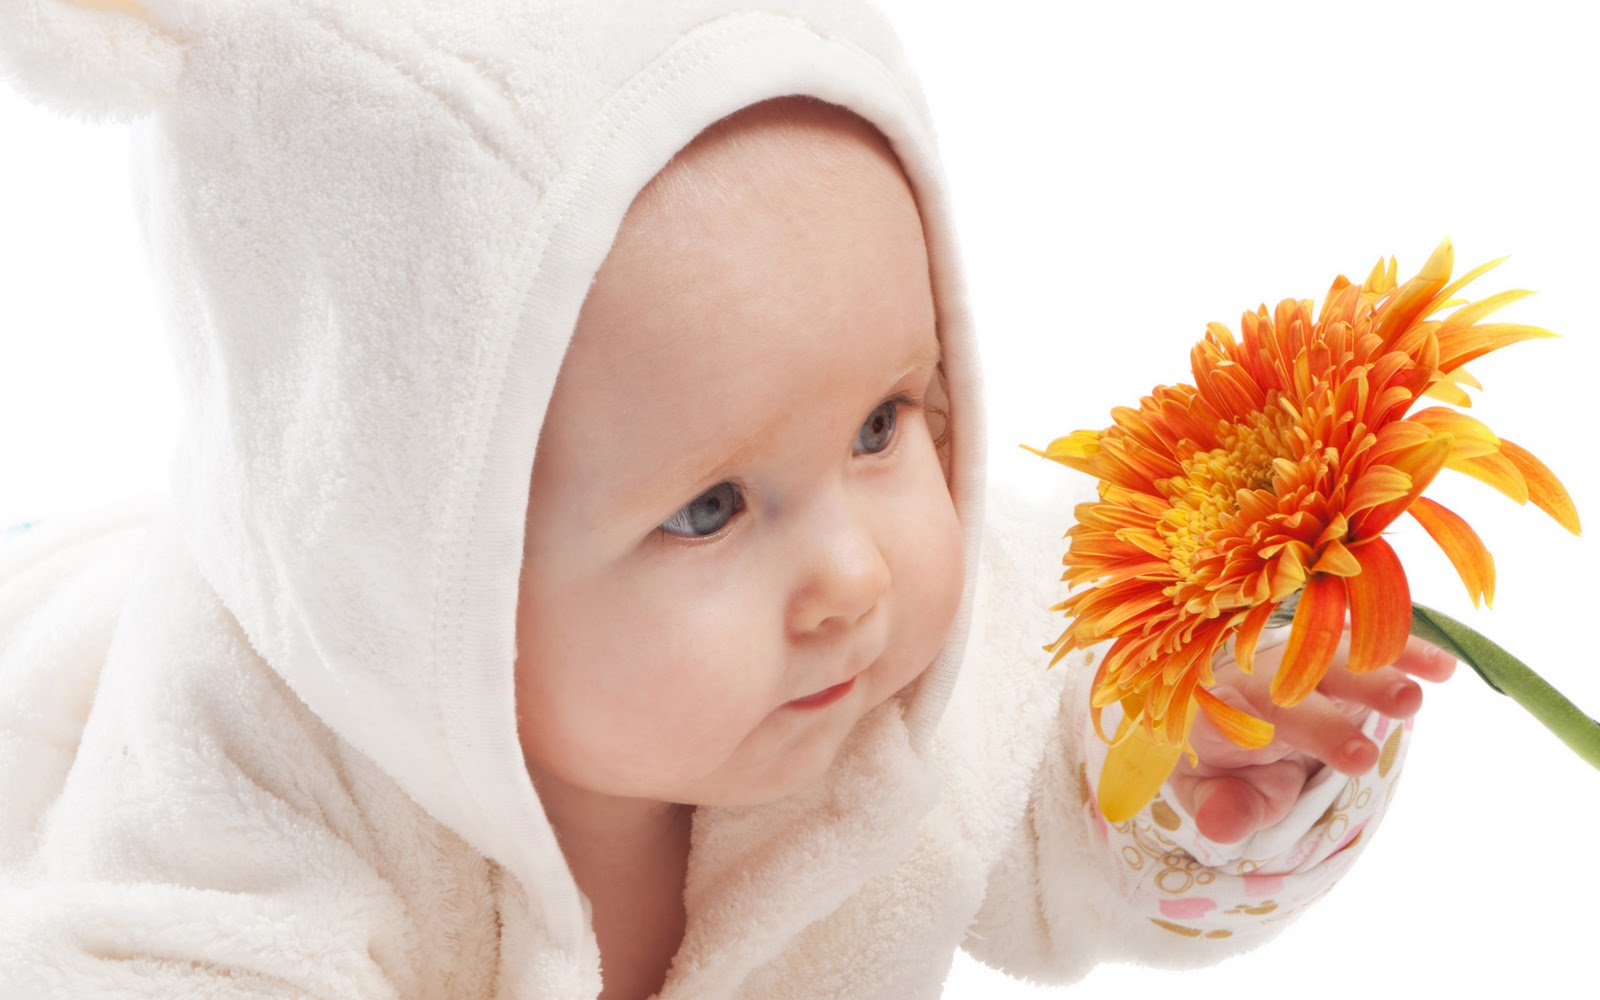 Babbies Wallpapers Free Download, Cute Kids Wallpapers